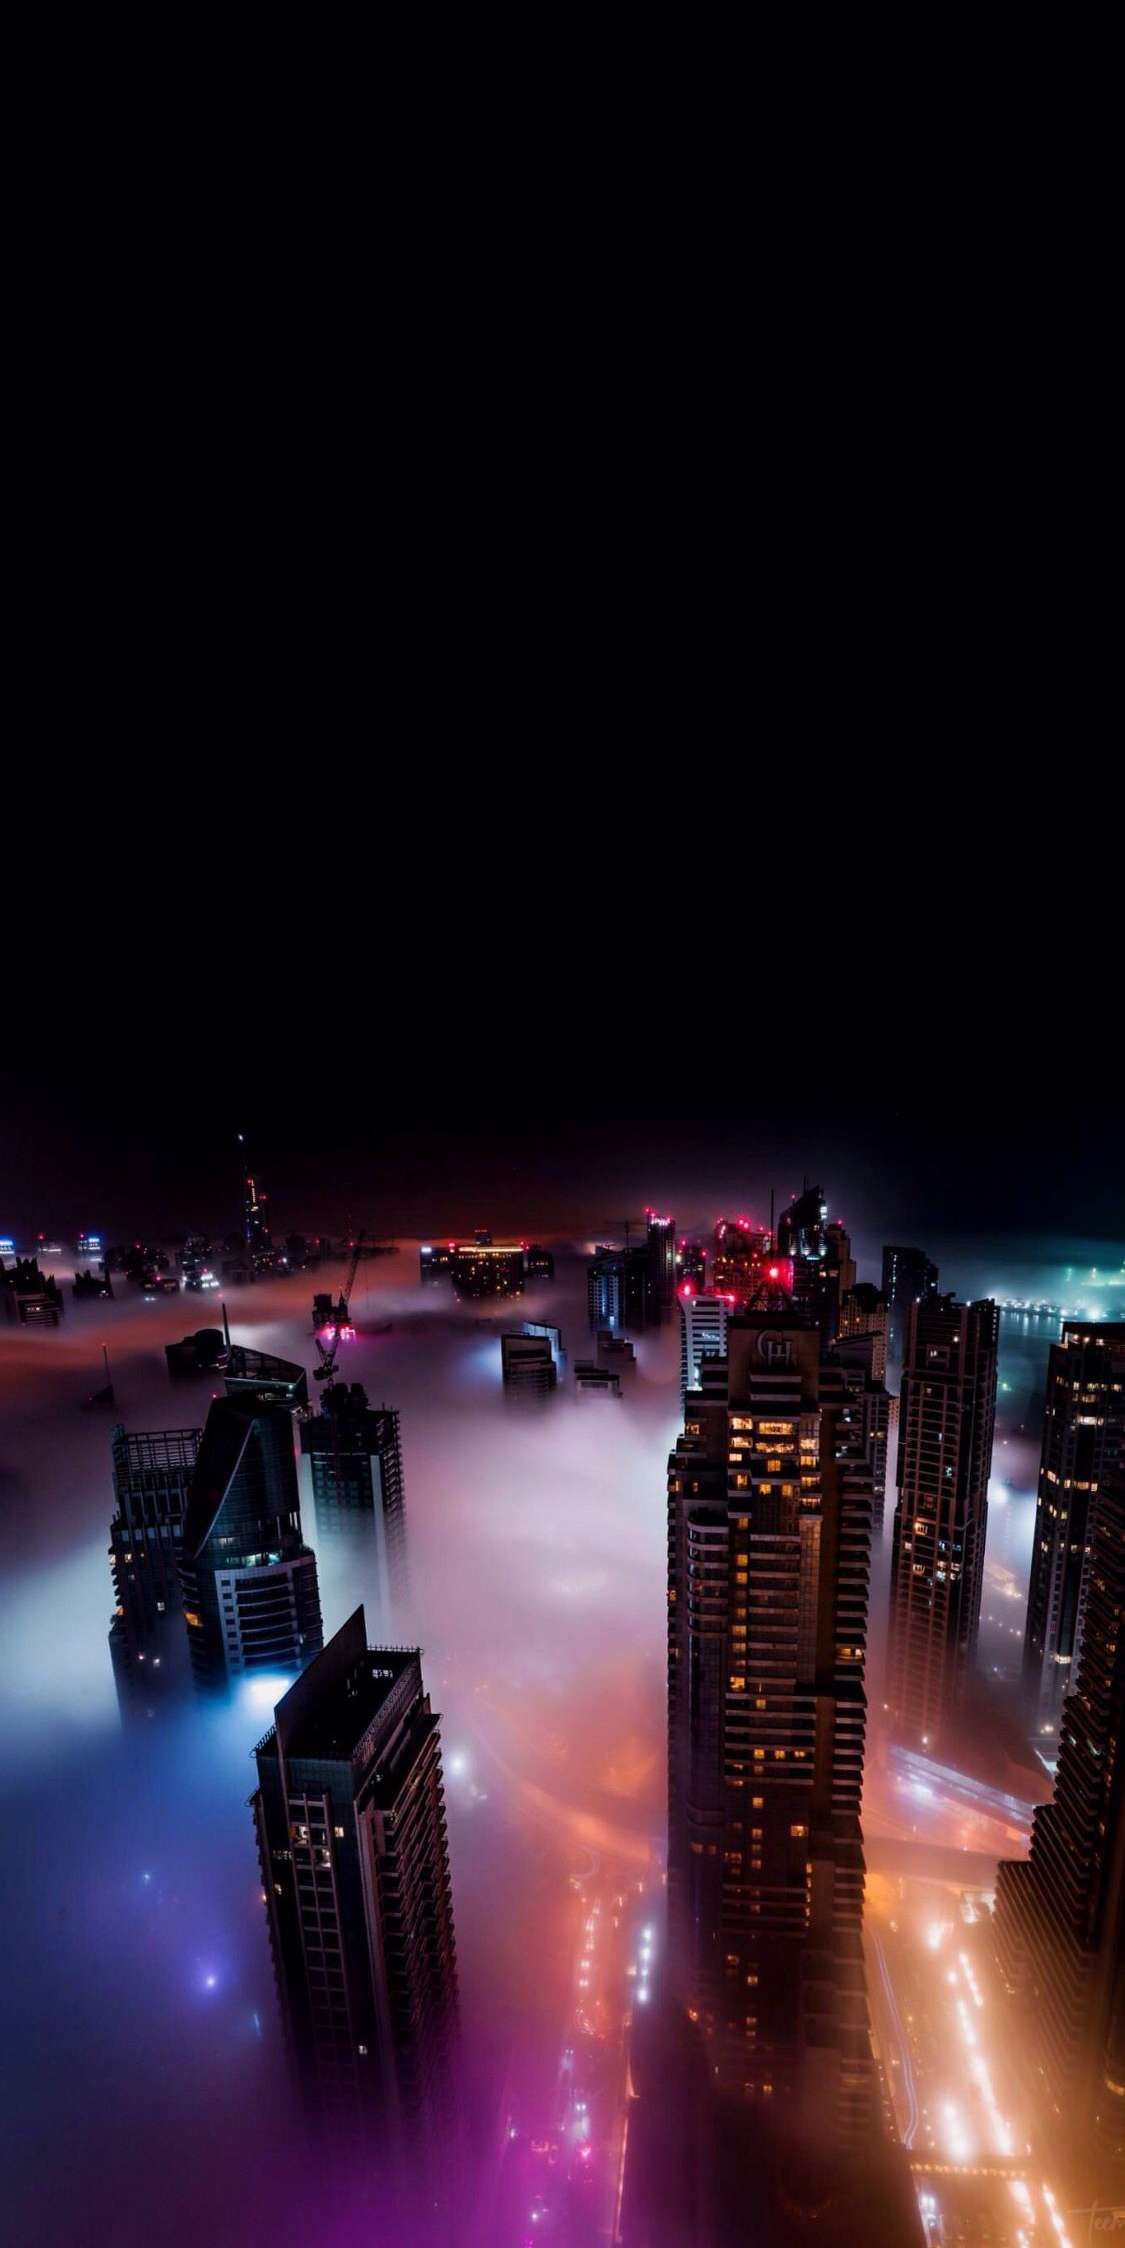 City At Night Iphone Wallpaper In 2019 City Wallpaper